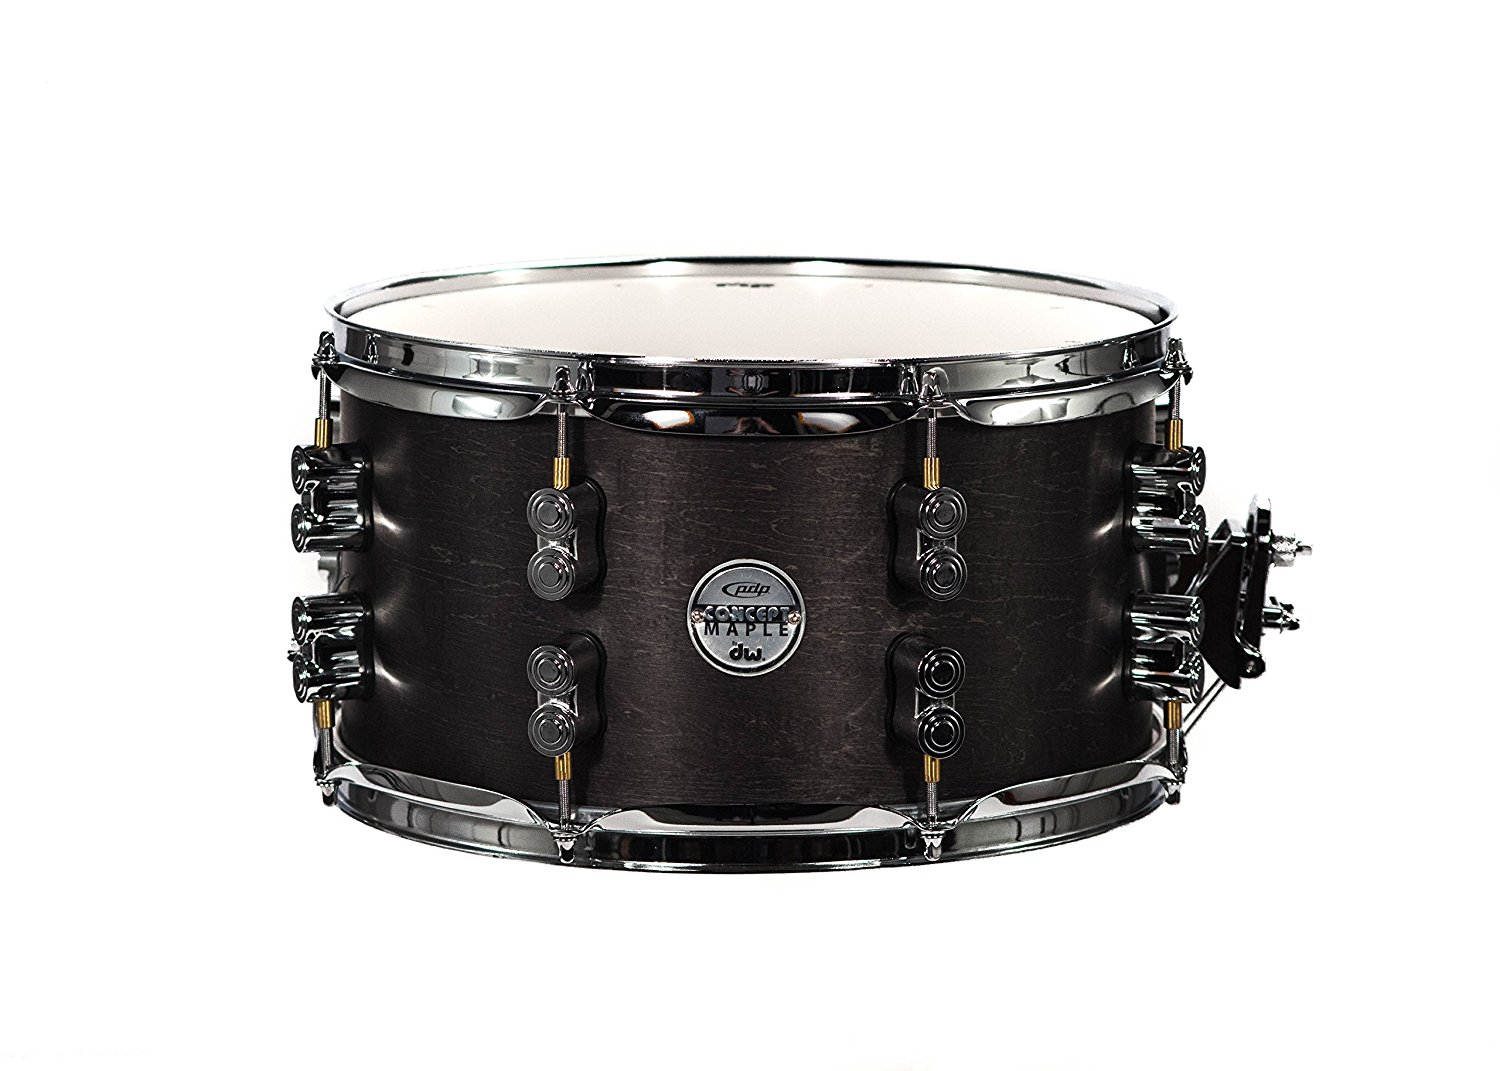 PDP By DW Black Wax Maple Snare Drum 7x13